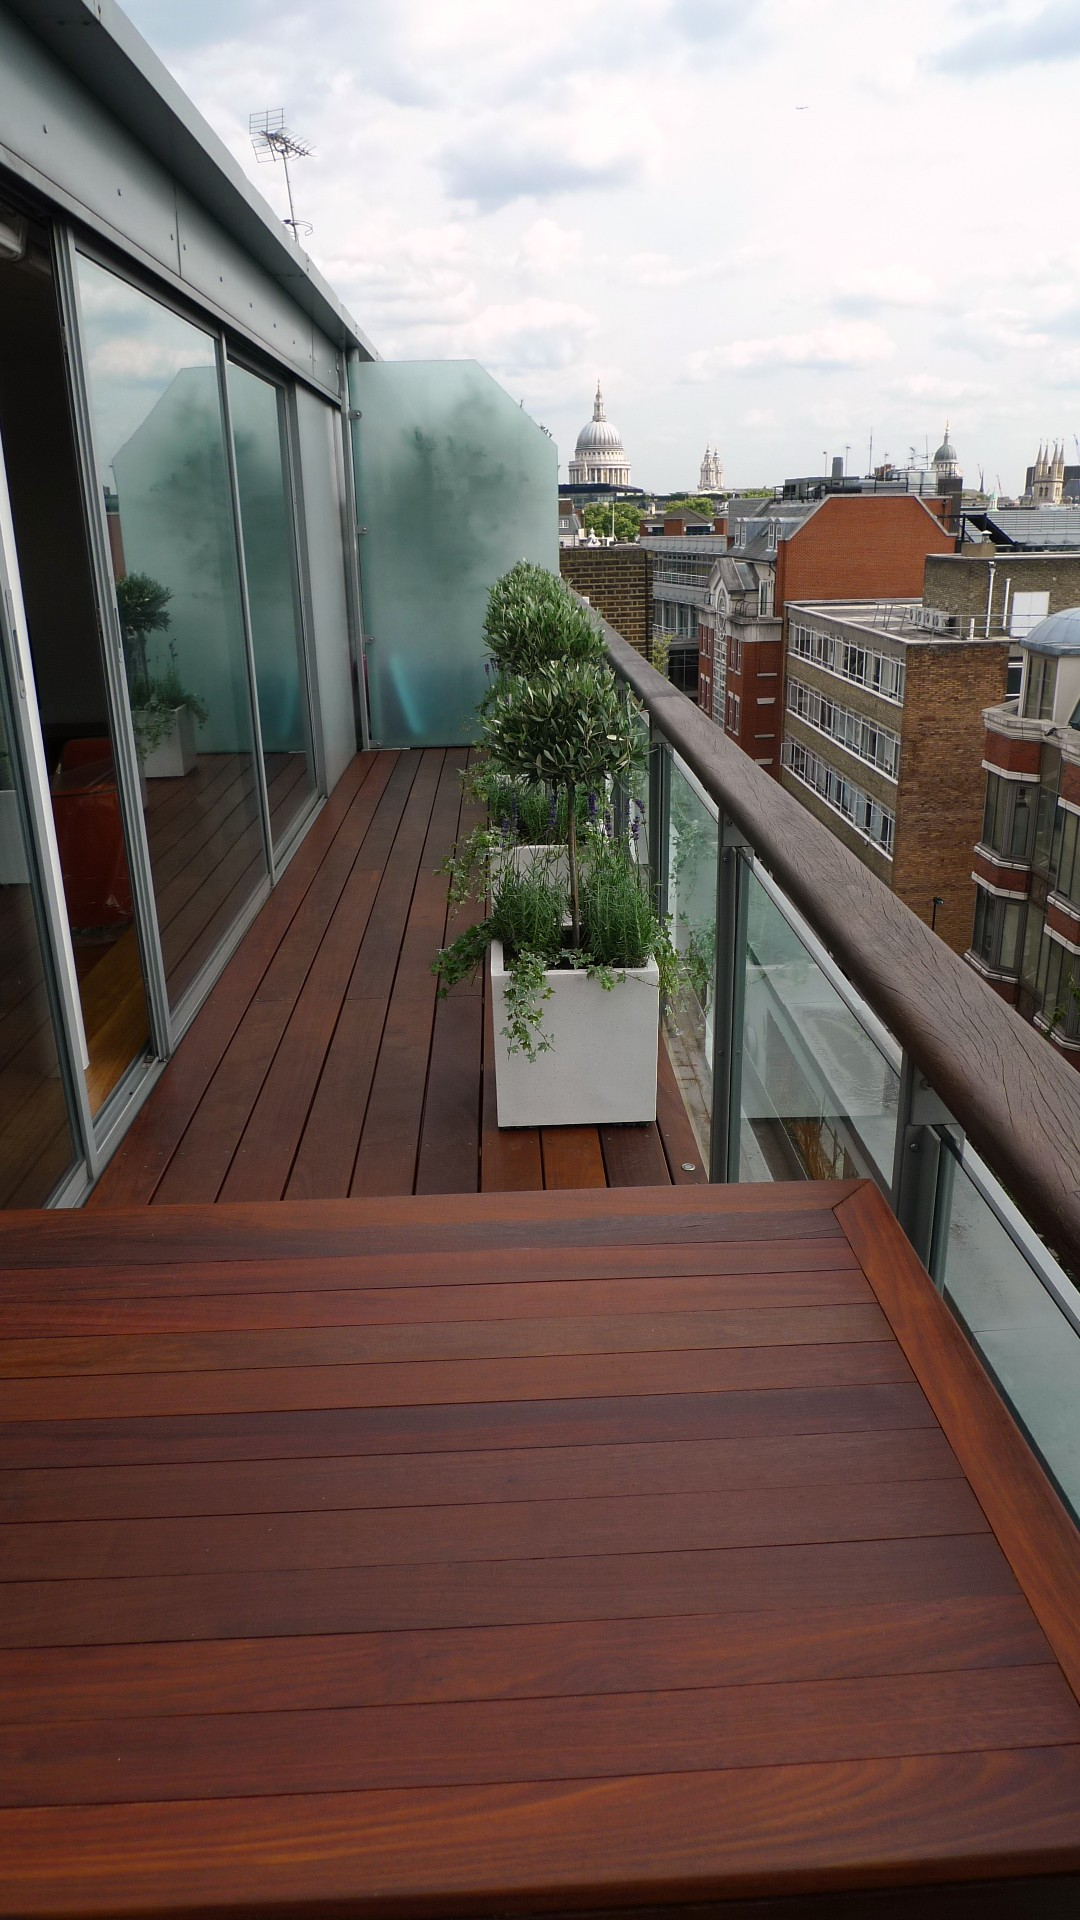 Ipe brazillian hardwood deck decking installation builders garden designers islington central london roof garden (8)